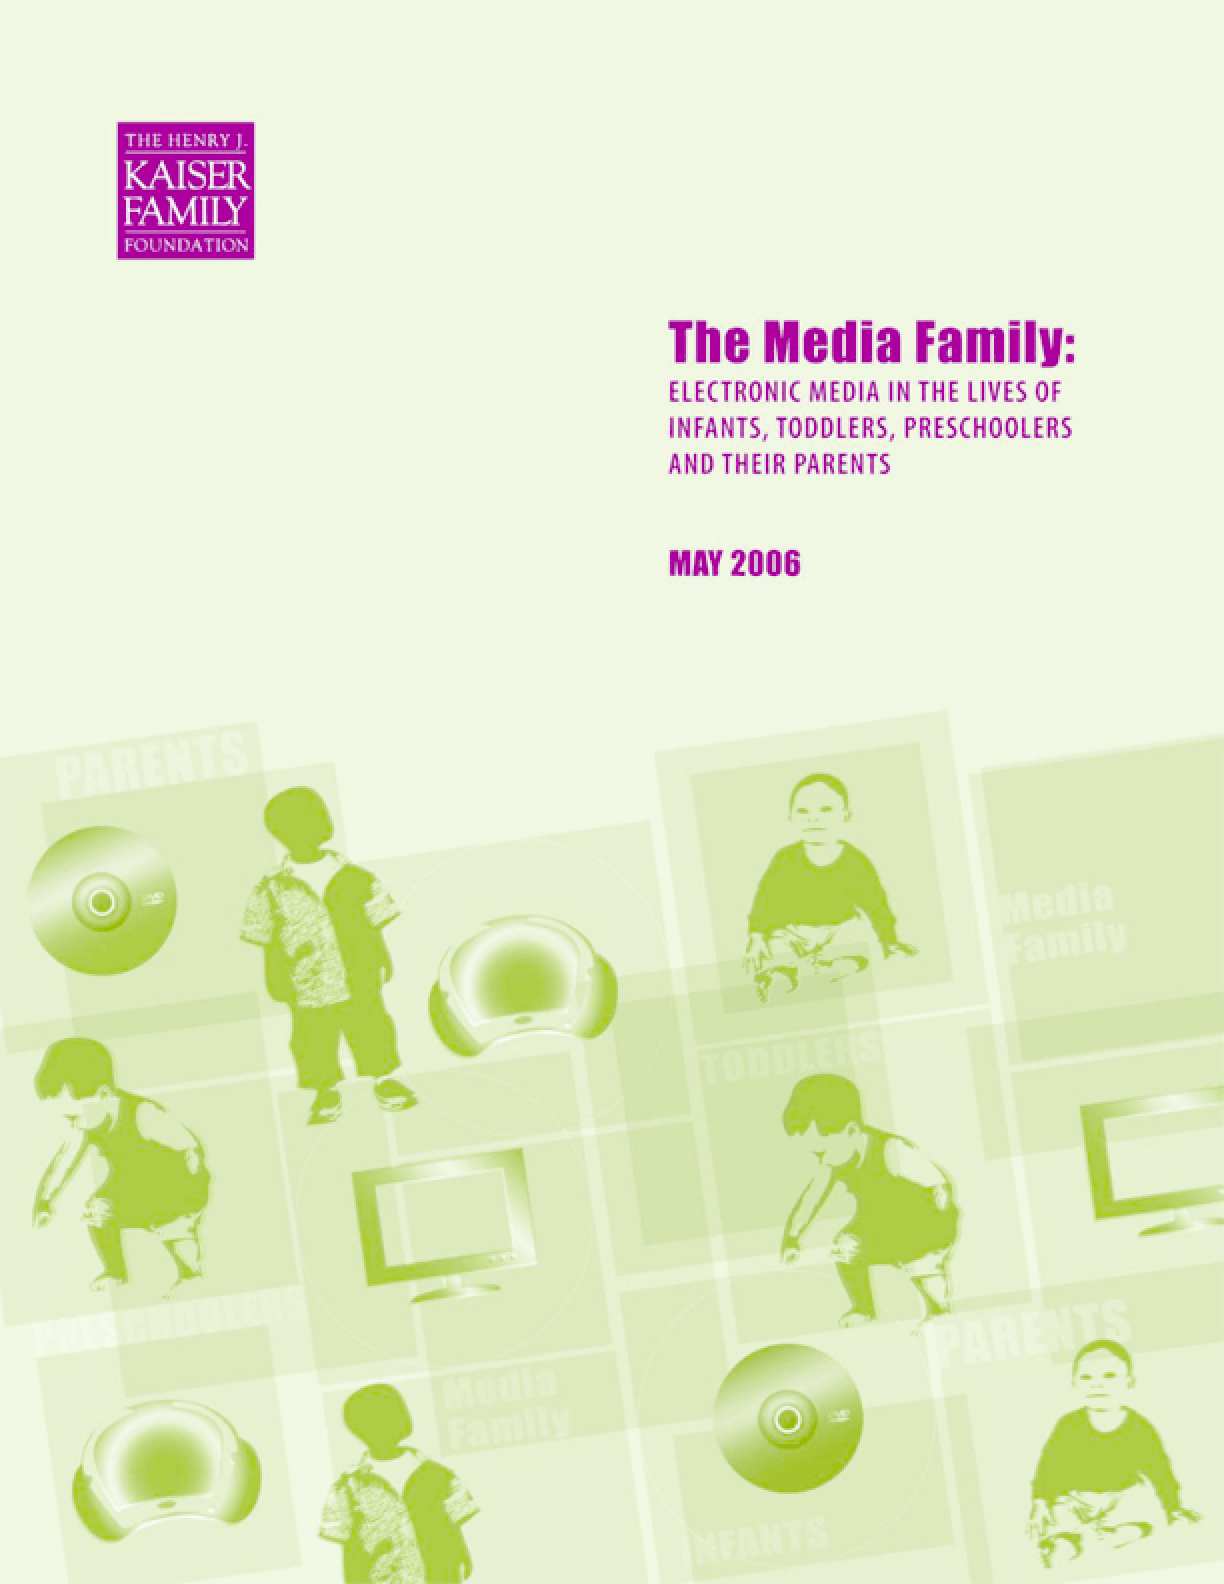 The Media Family: Electronic Media in the Lives of Infants, Toddlers, Preschoolers, and Their Parents